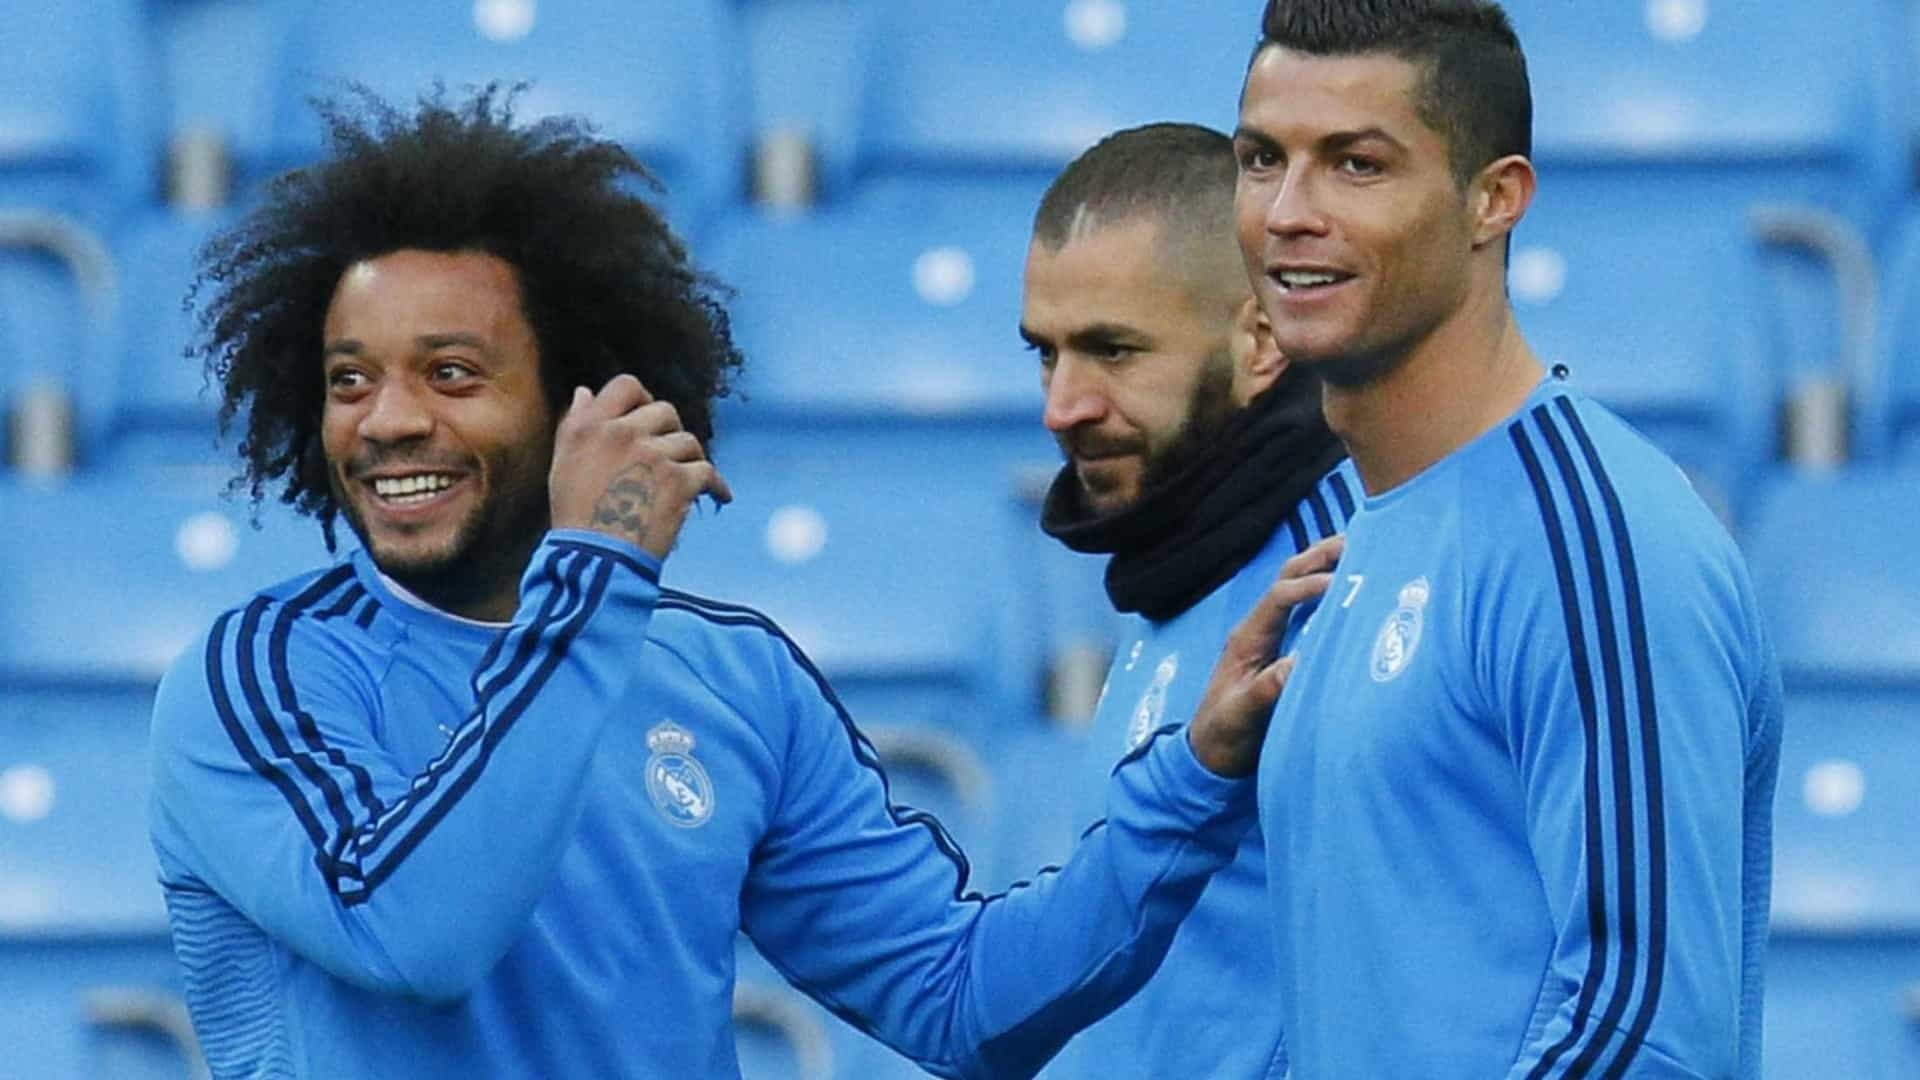 Oficial: Real Madrid renova com Marcelo